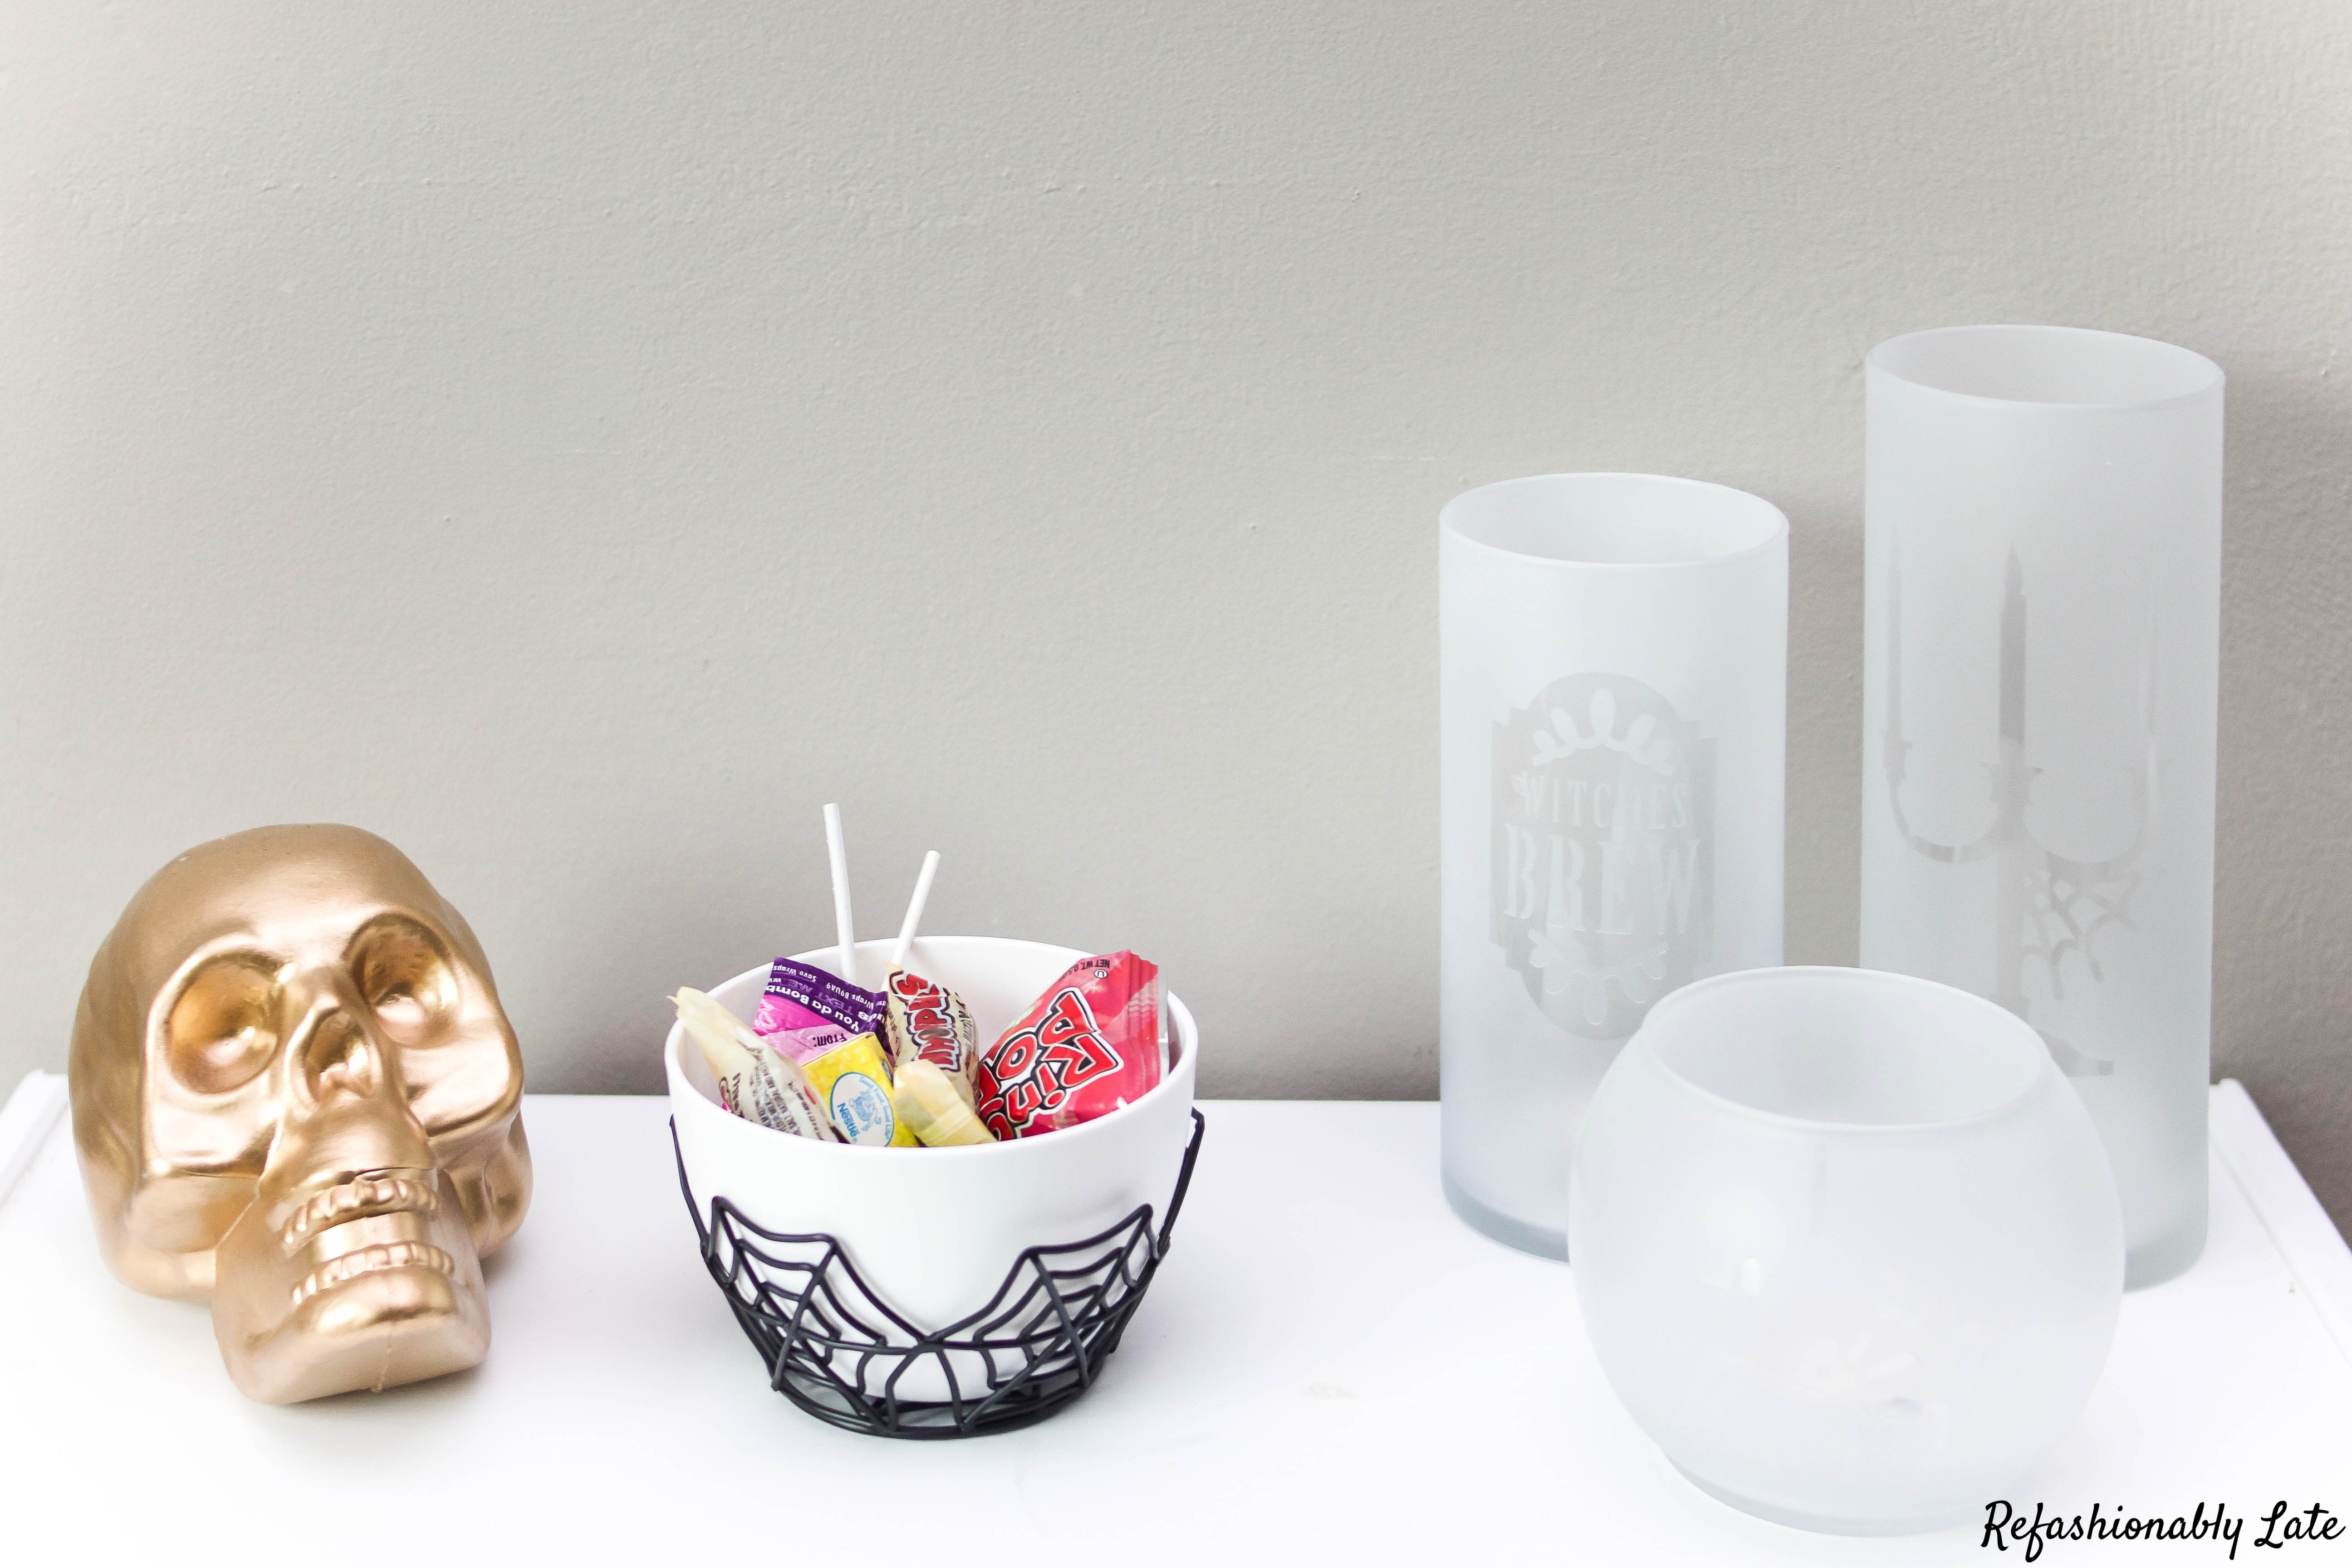 Gold skull halloween candy and 3 frosted halloween candle vases decorated with Halloween graphics